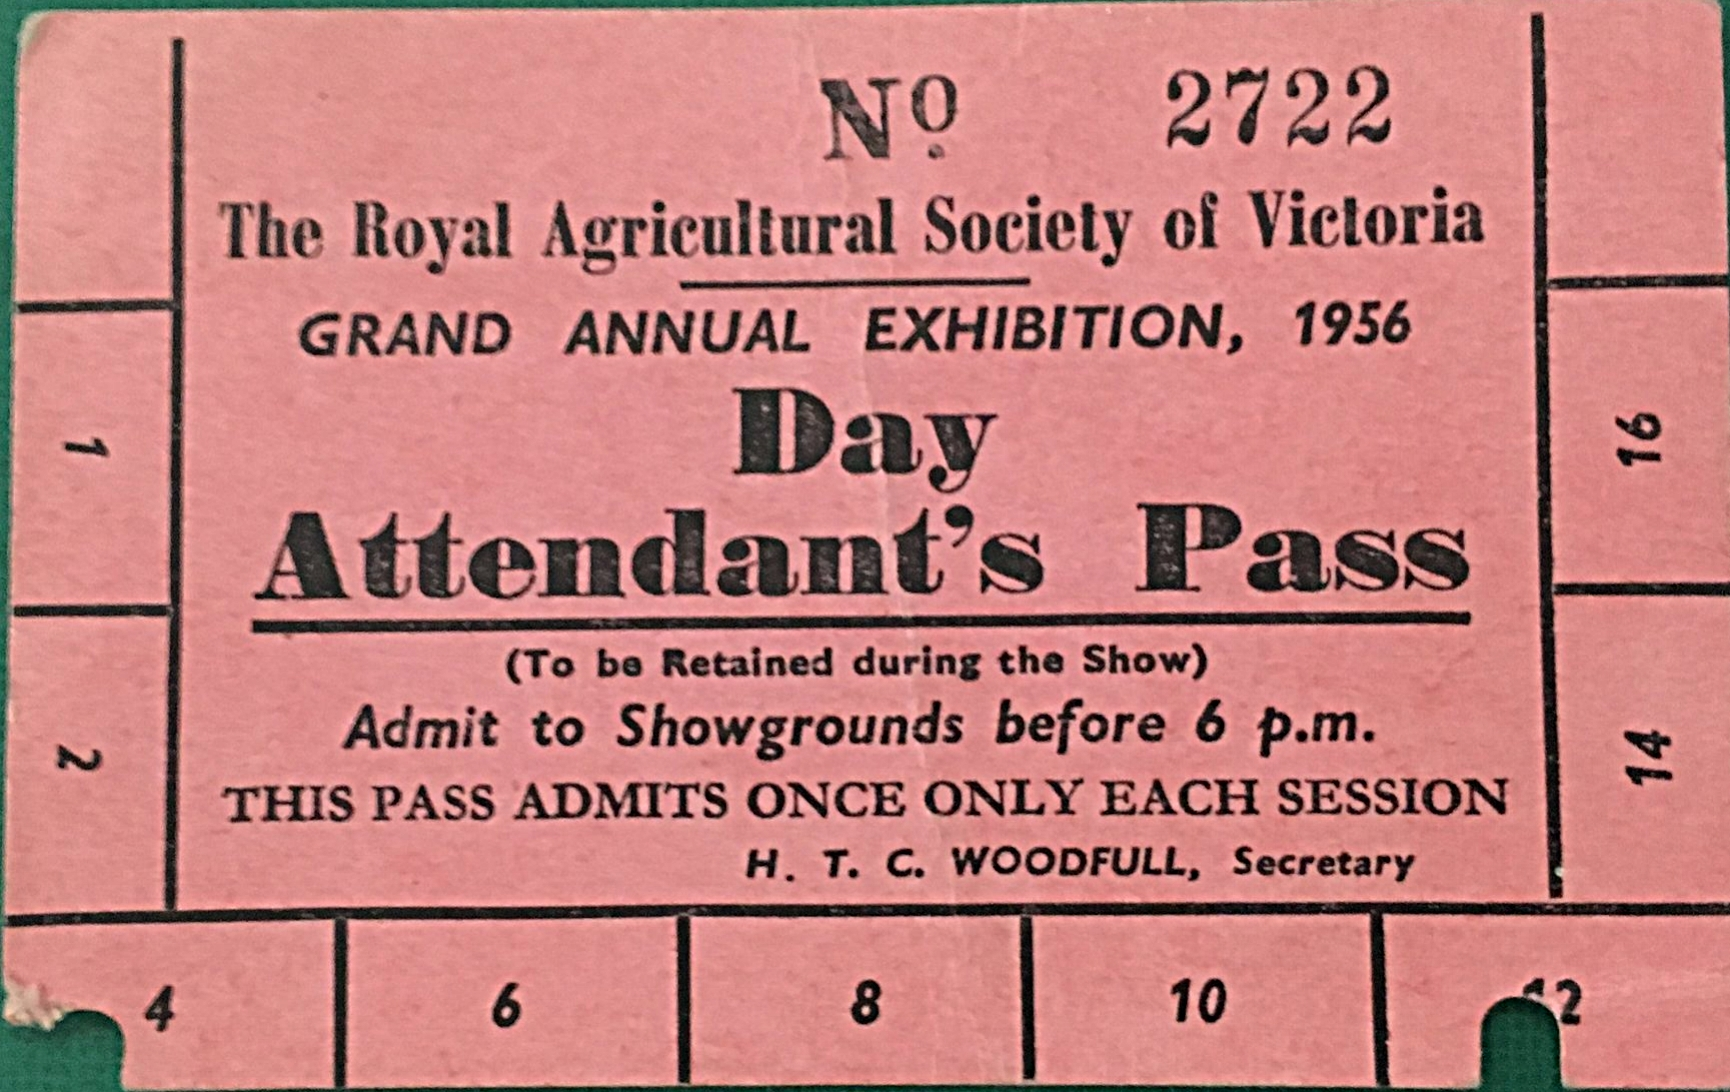 14.03.2018 - 1956 Grand Annual Exhibition Day Attendant's Pass.JPG